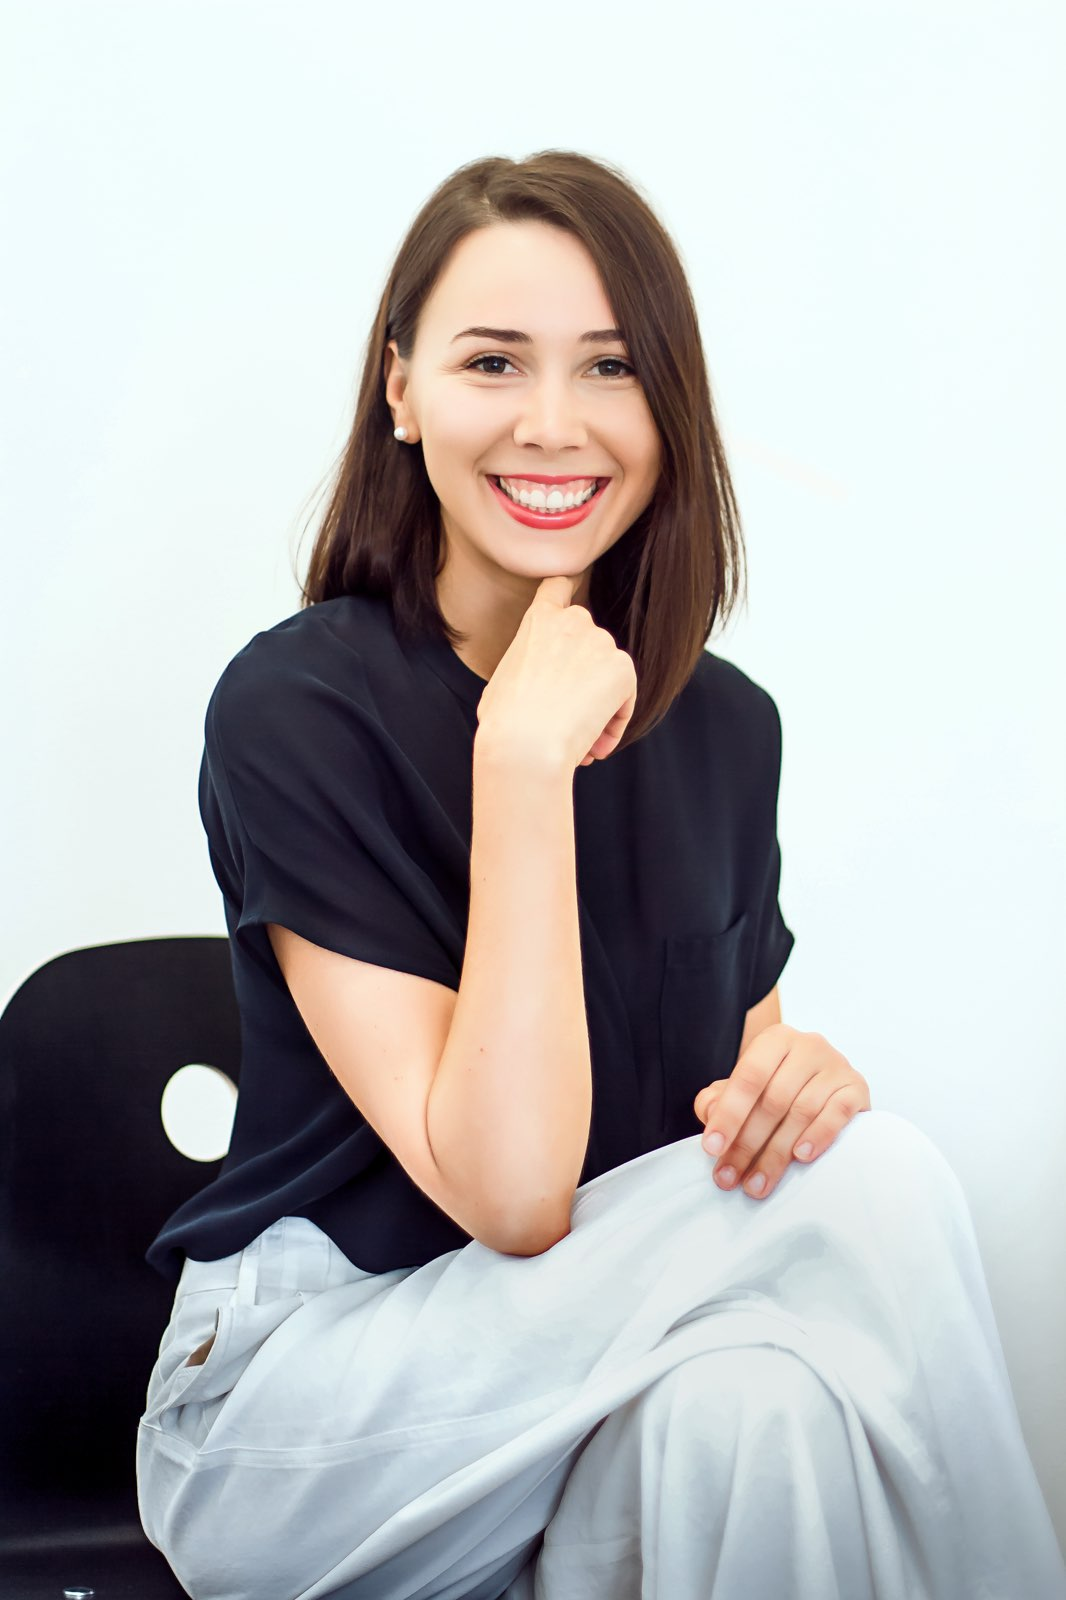 A brunette girl smiling, wearing dark blue shirt and grey pants, after hiring a stylist